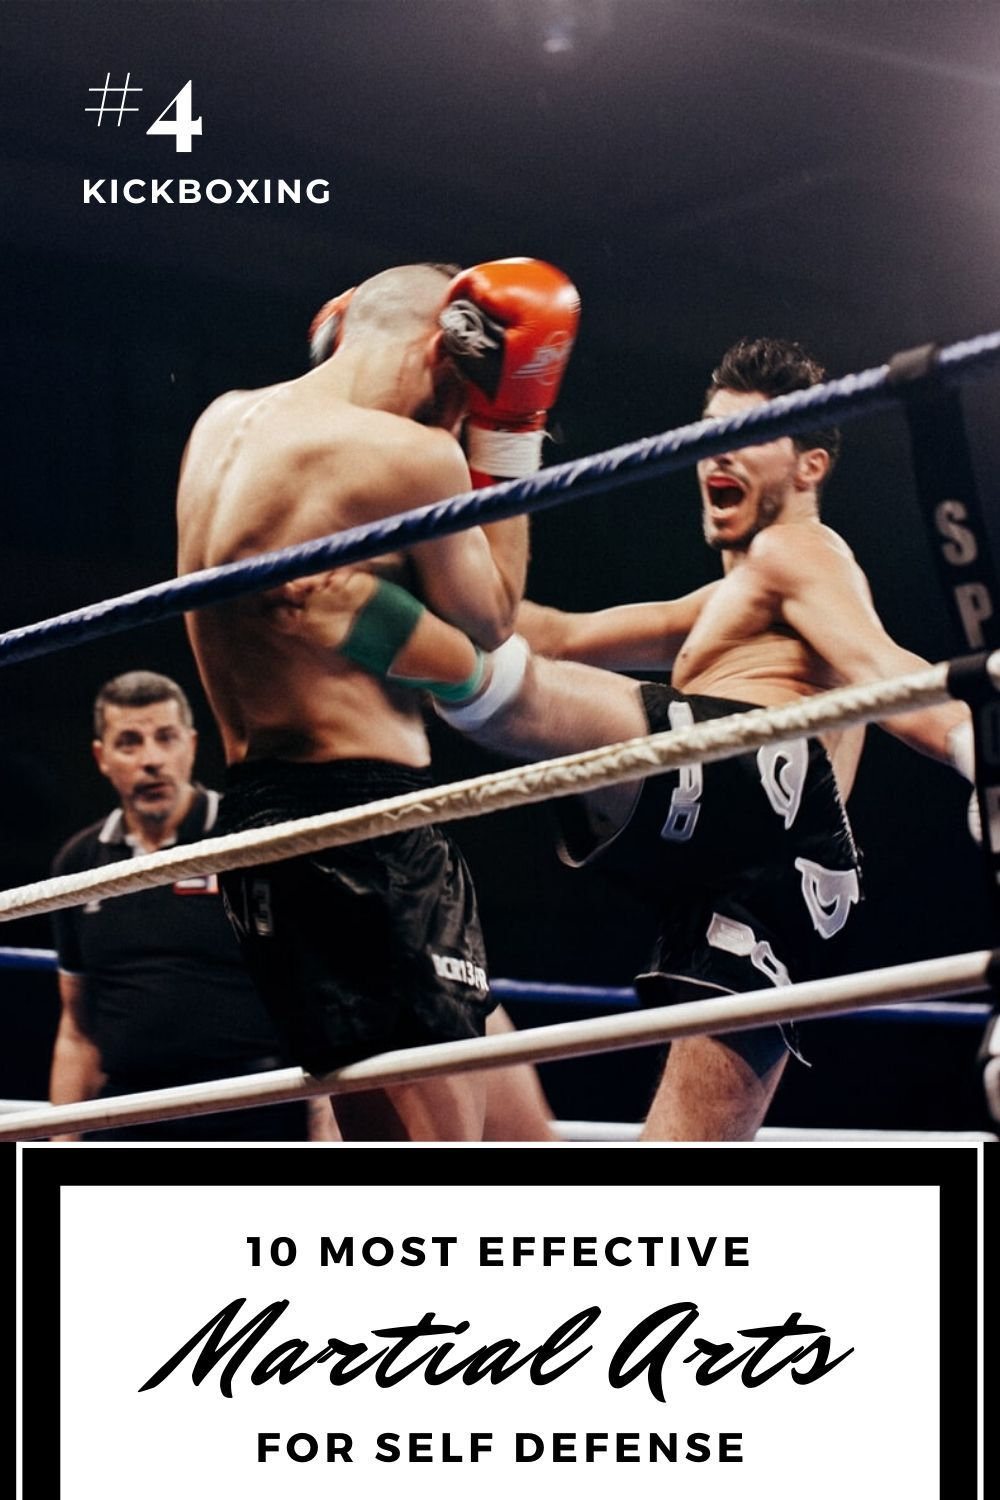 10 most effective martial arts for self defense in 2020